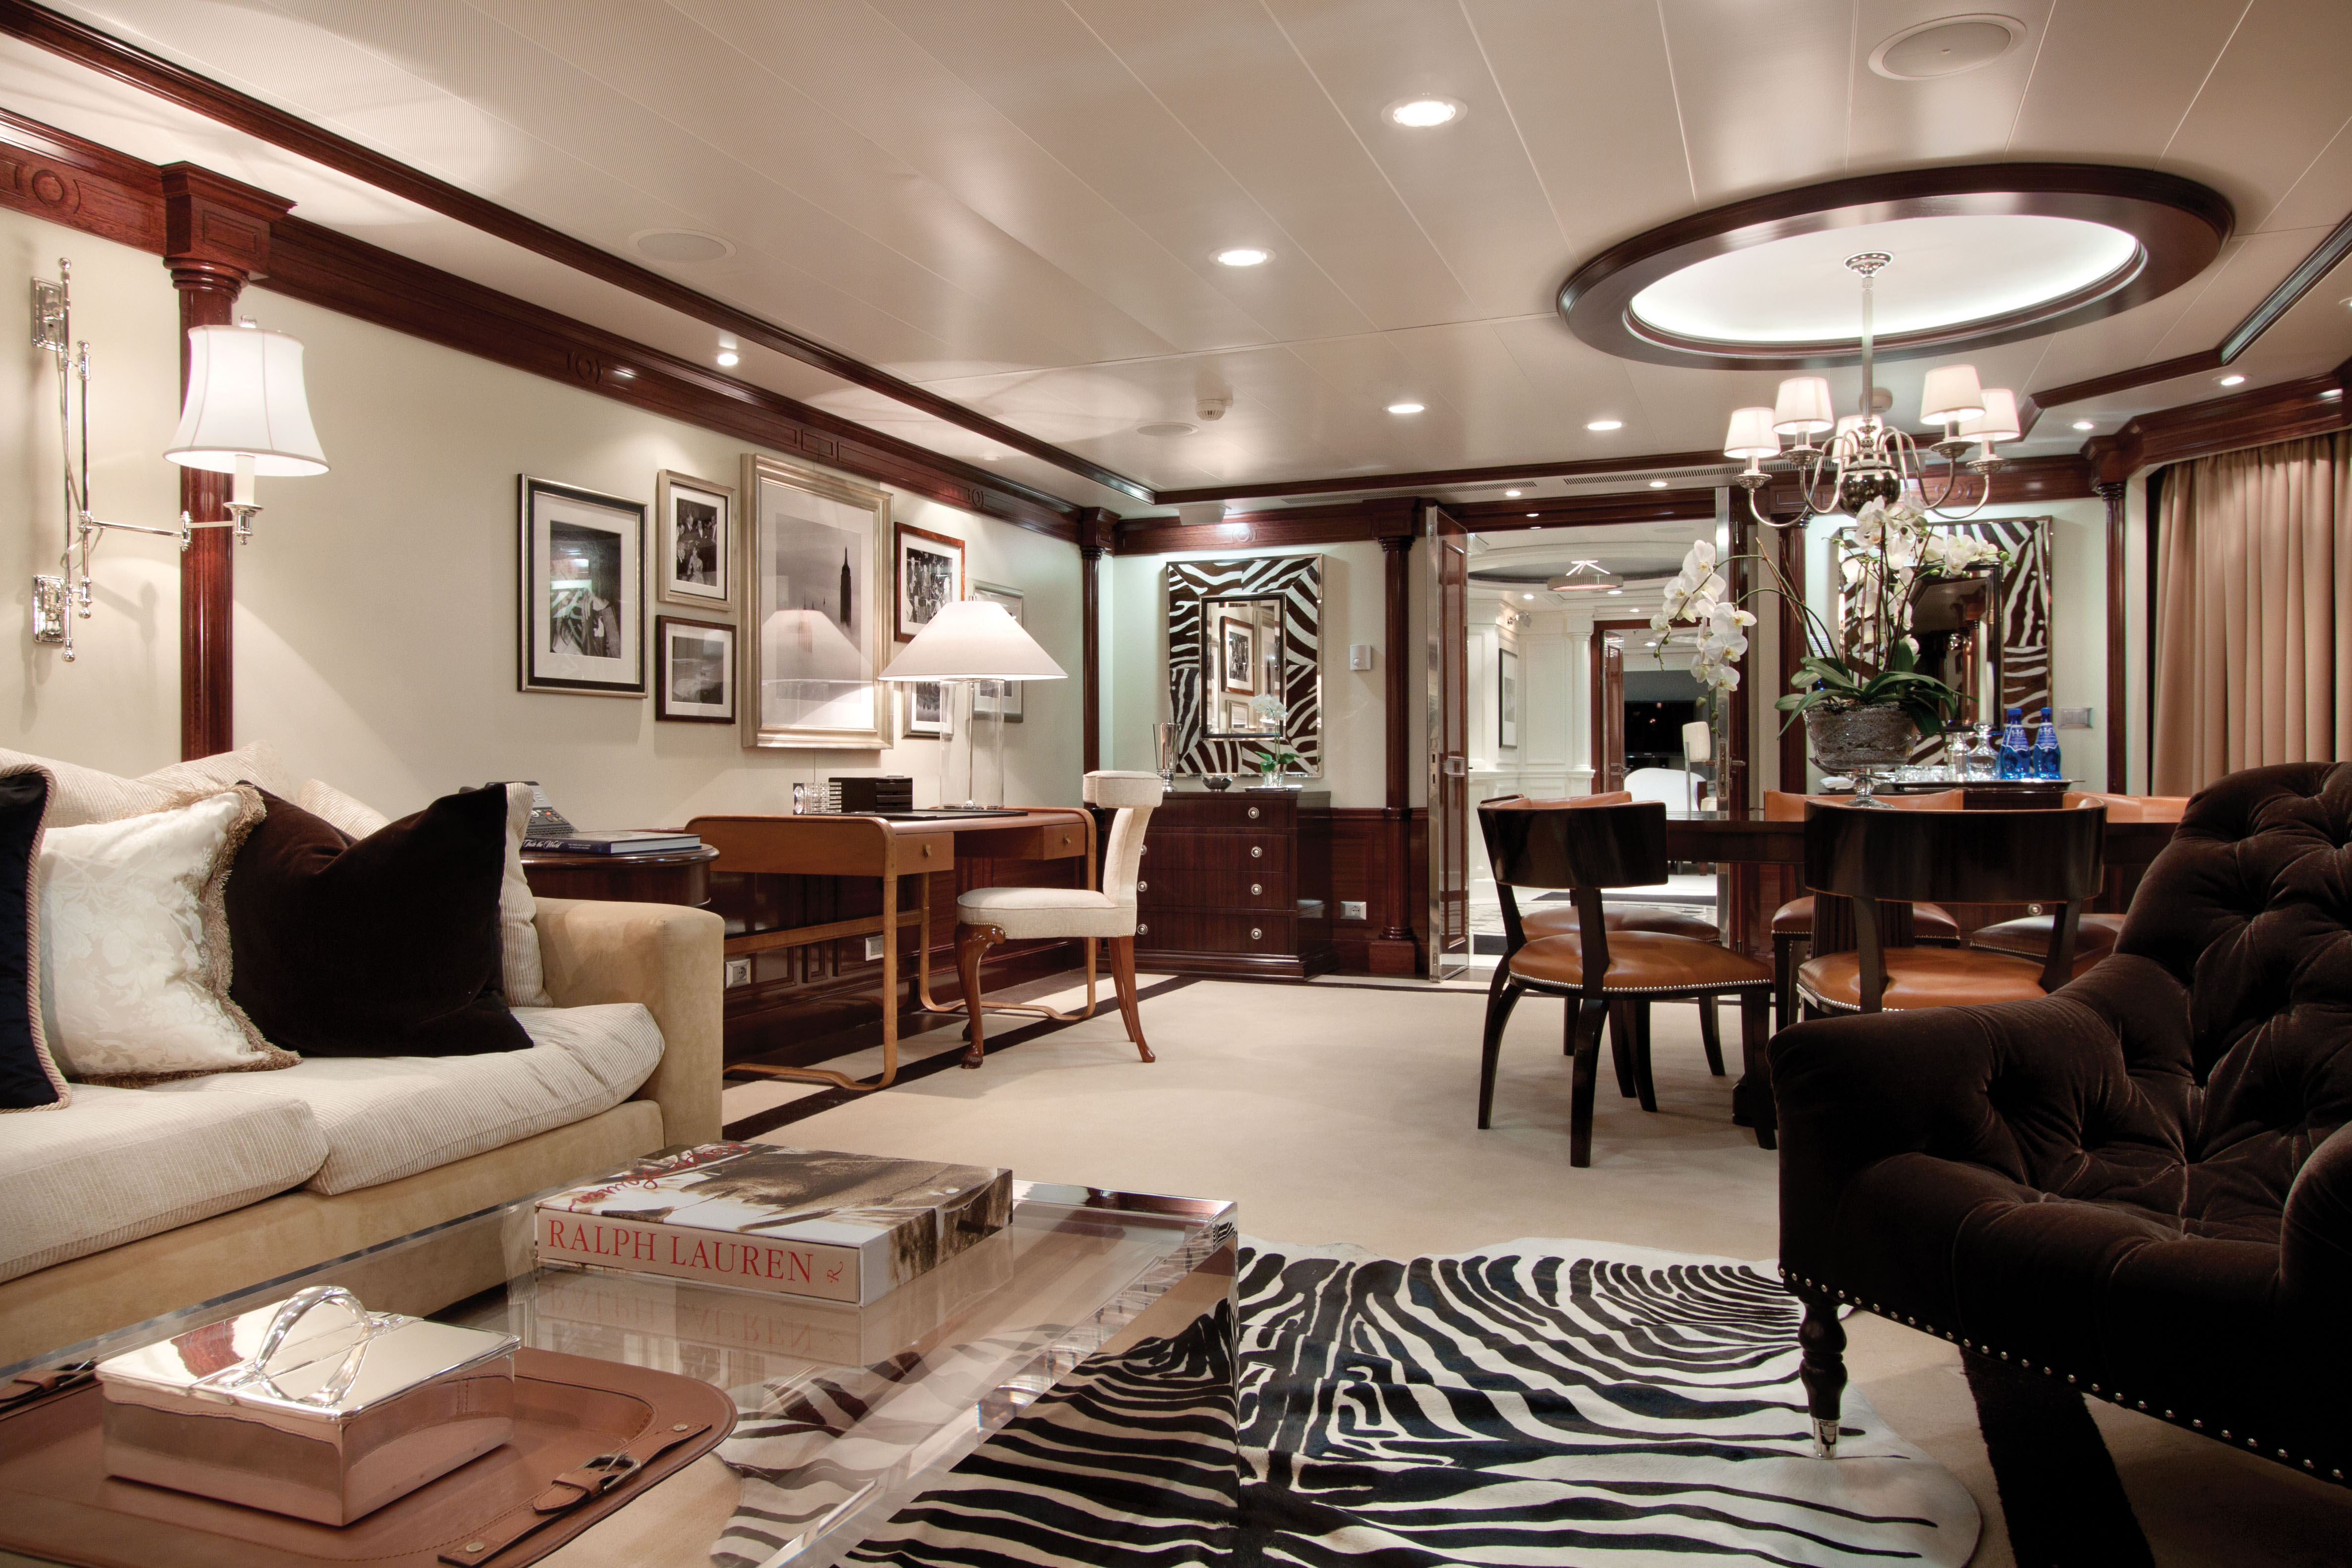 Oceania Cruises Oceania Class Accommodation Owners Suite.jpg